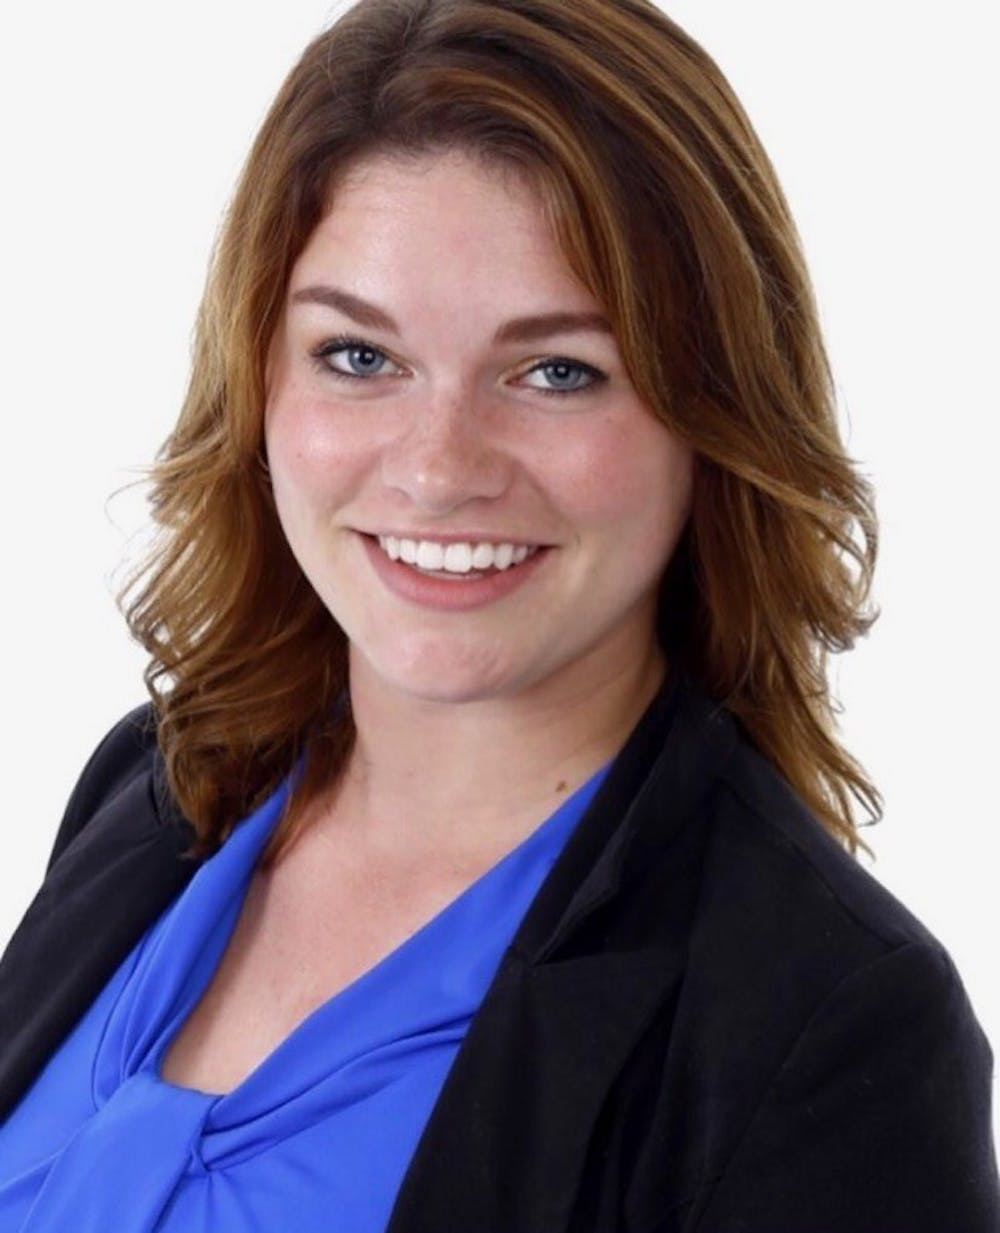 Recent Ball State alumna is CEO of her own company, Bend N' Bright